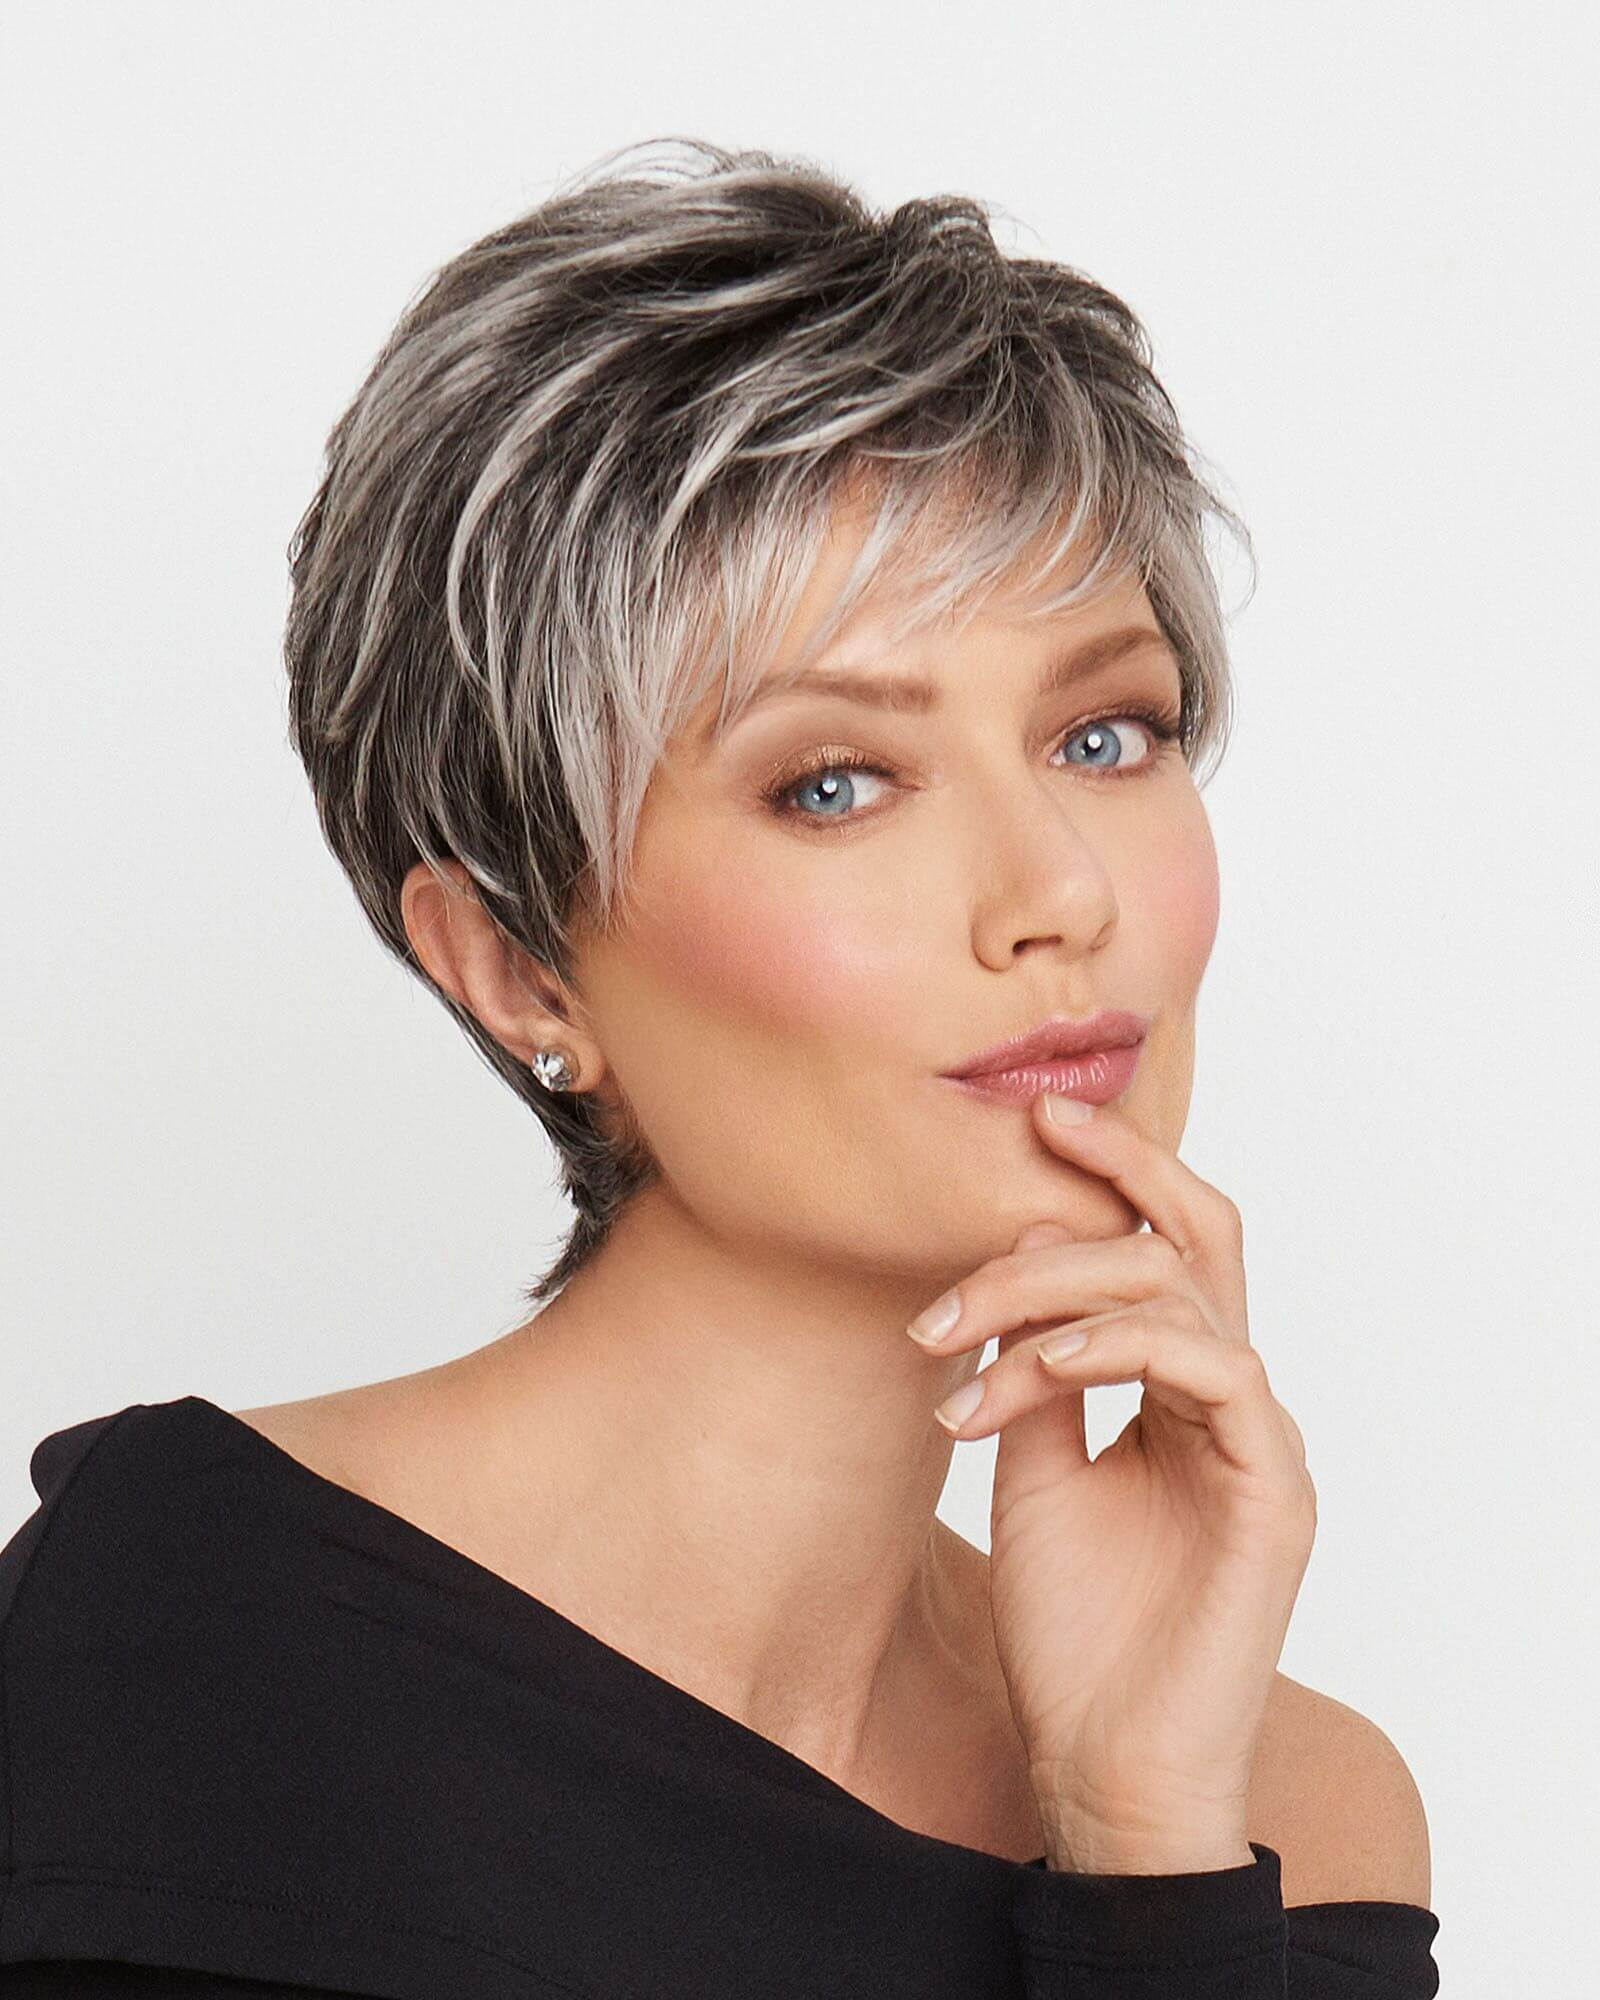 The Pixie with textured undercut